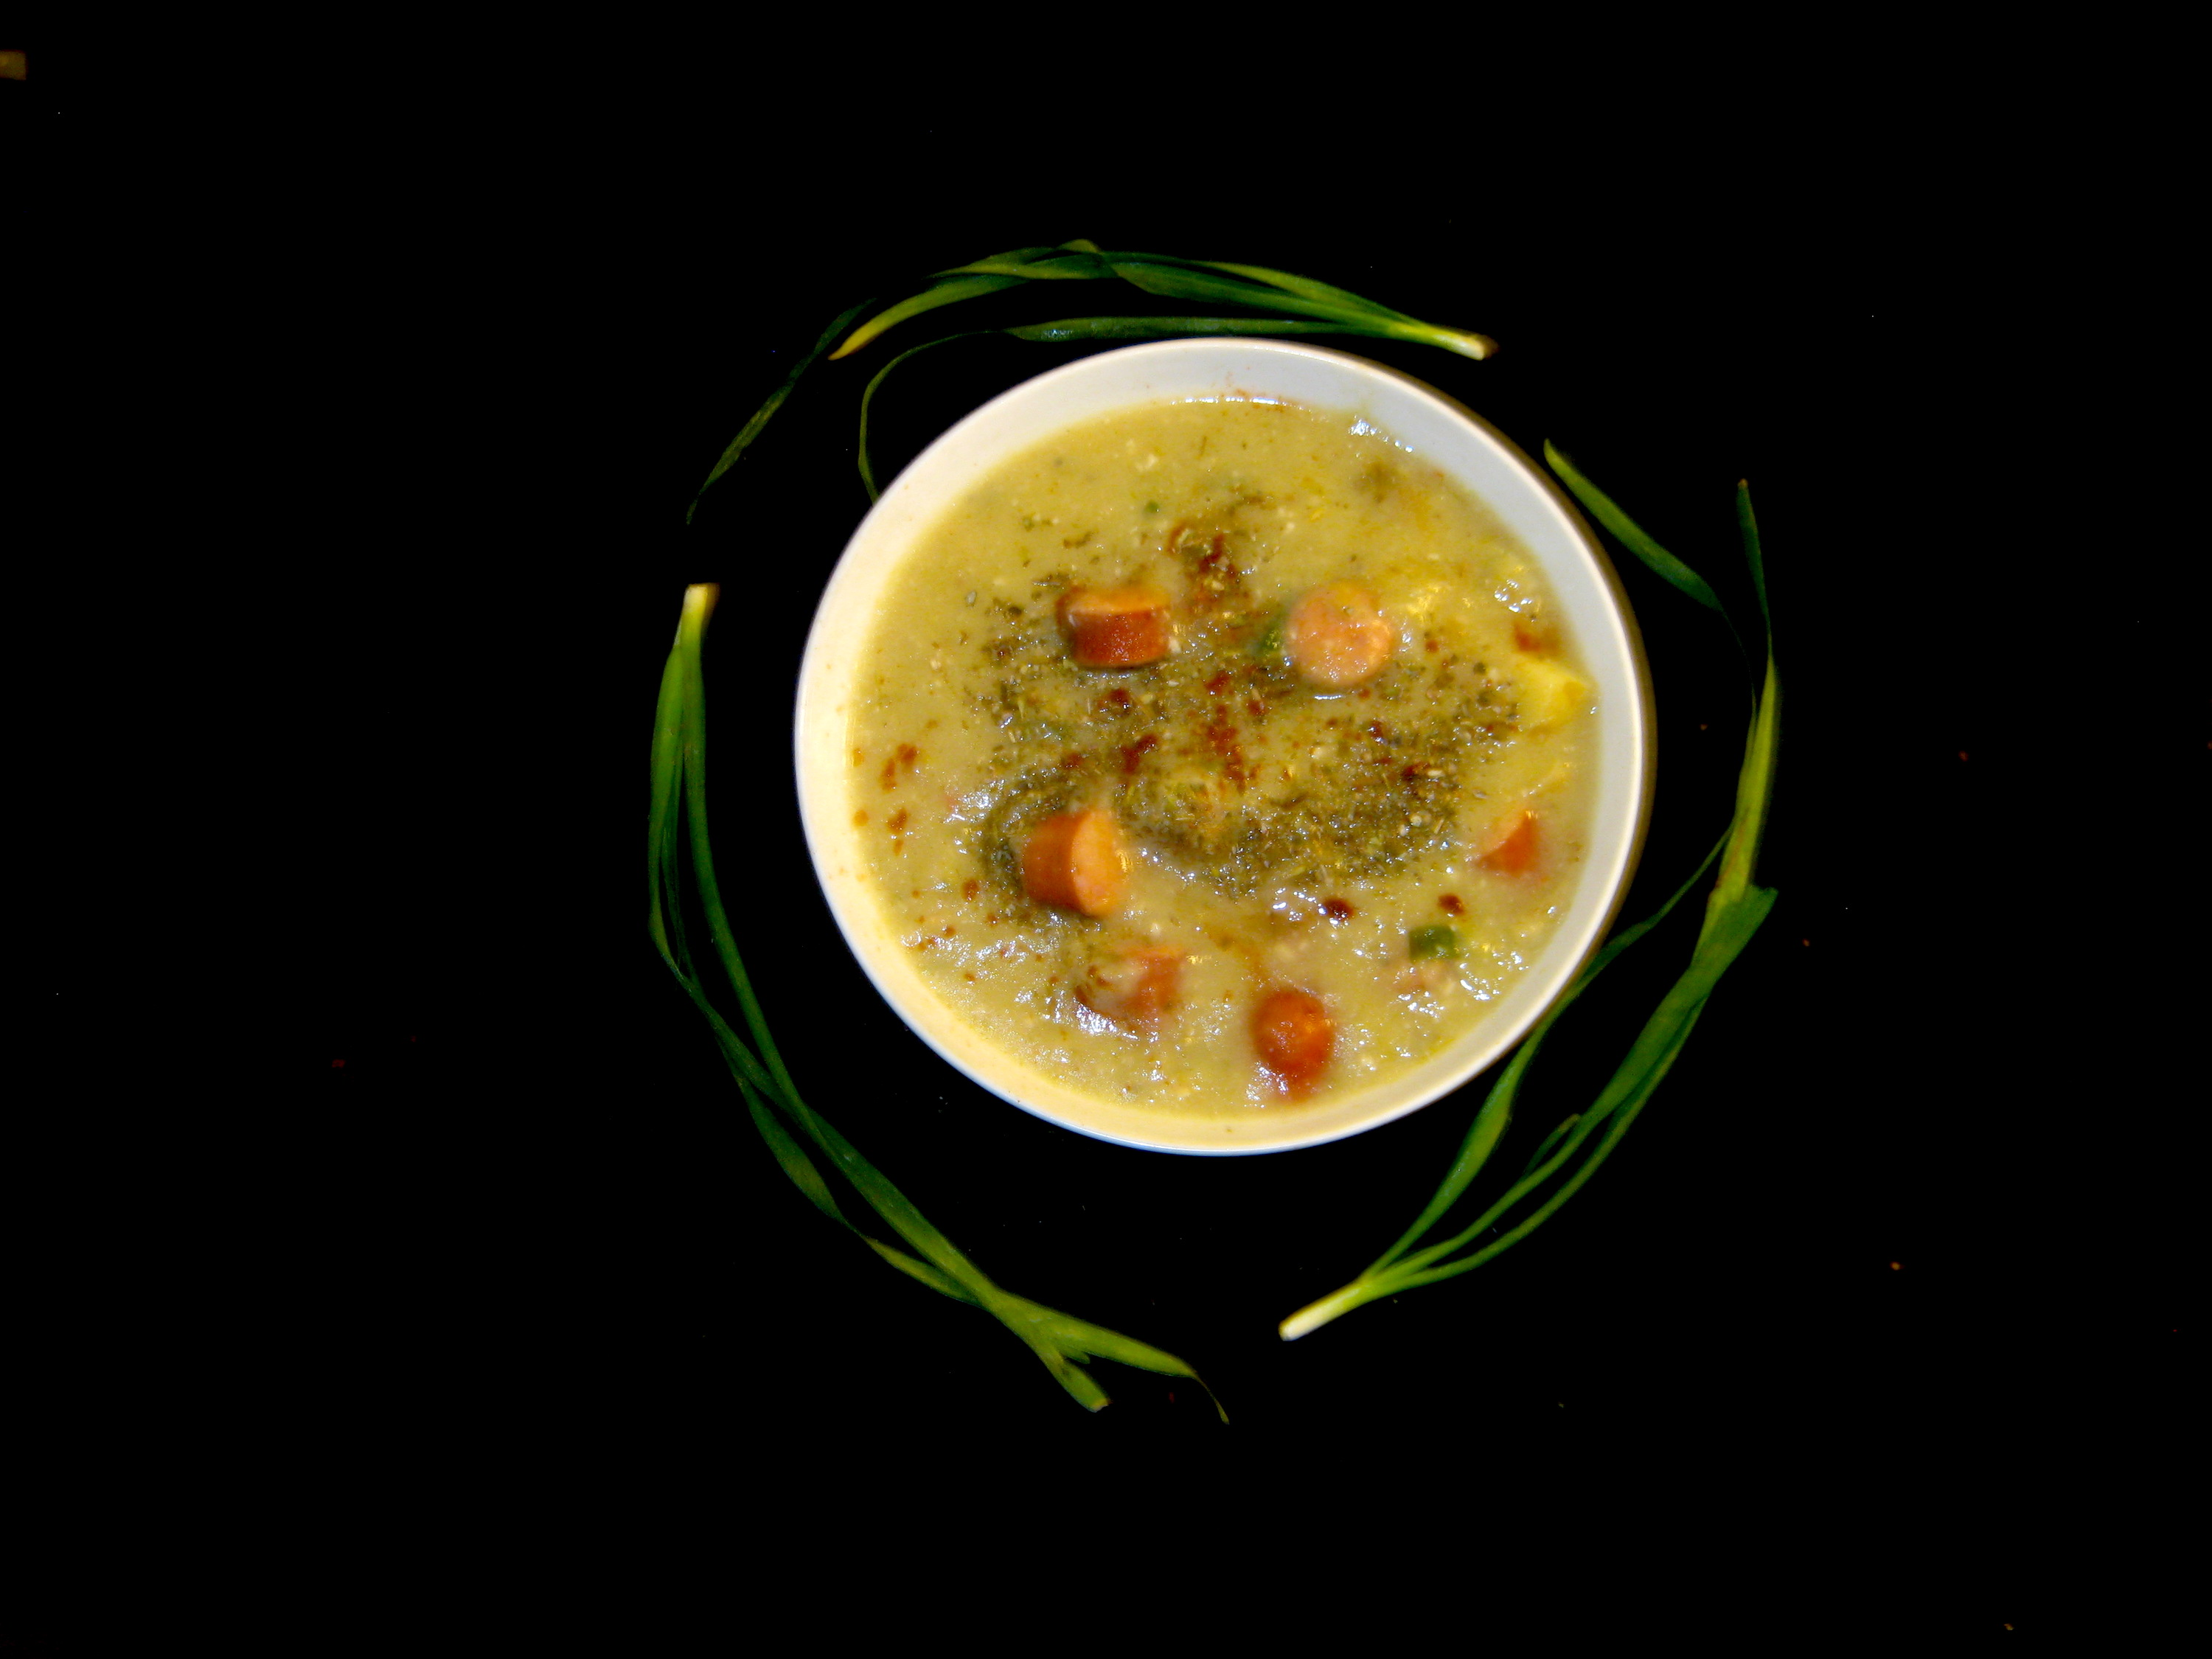 Potato Leek Soup with Debrecziner